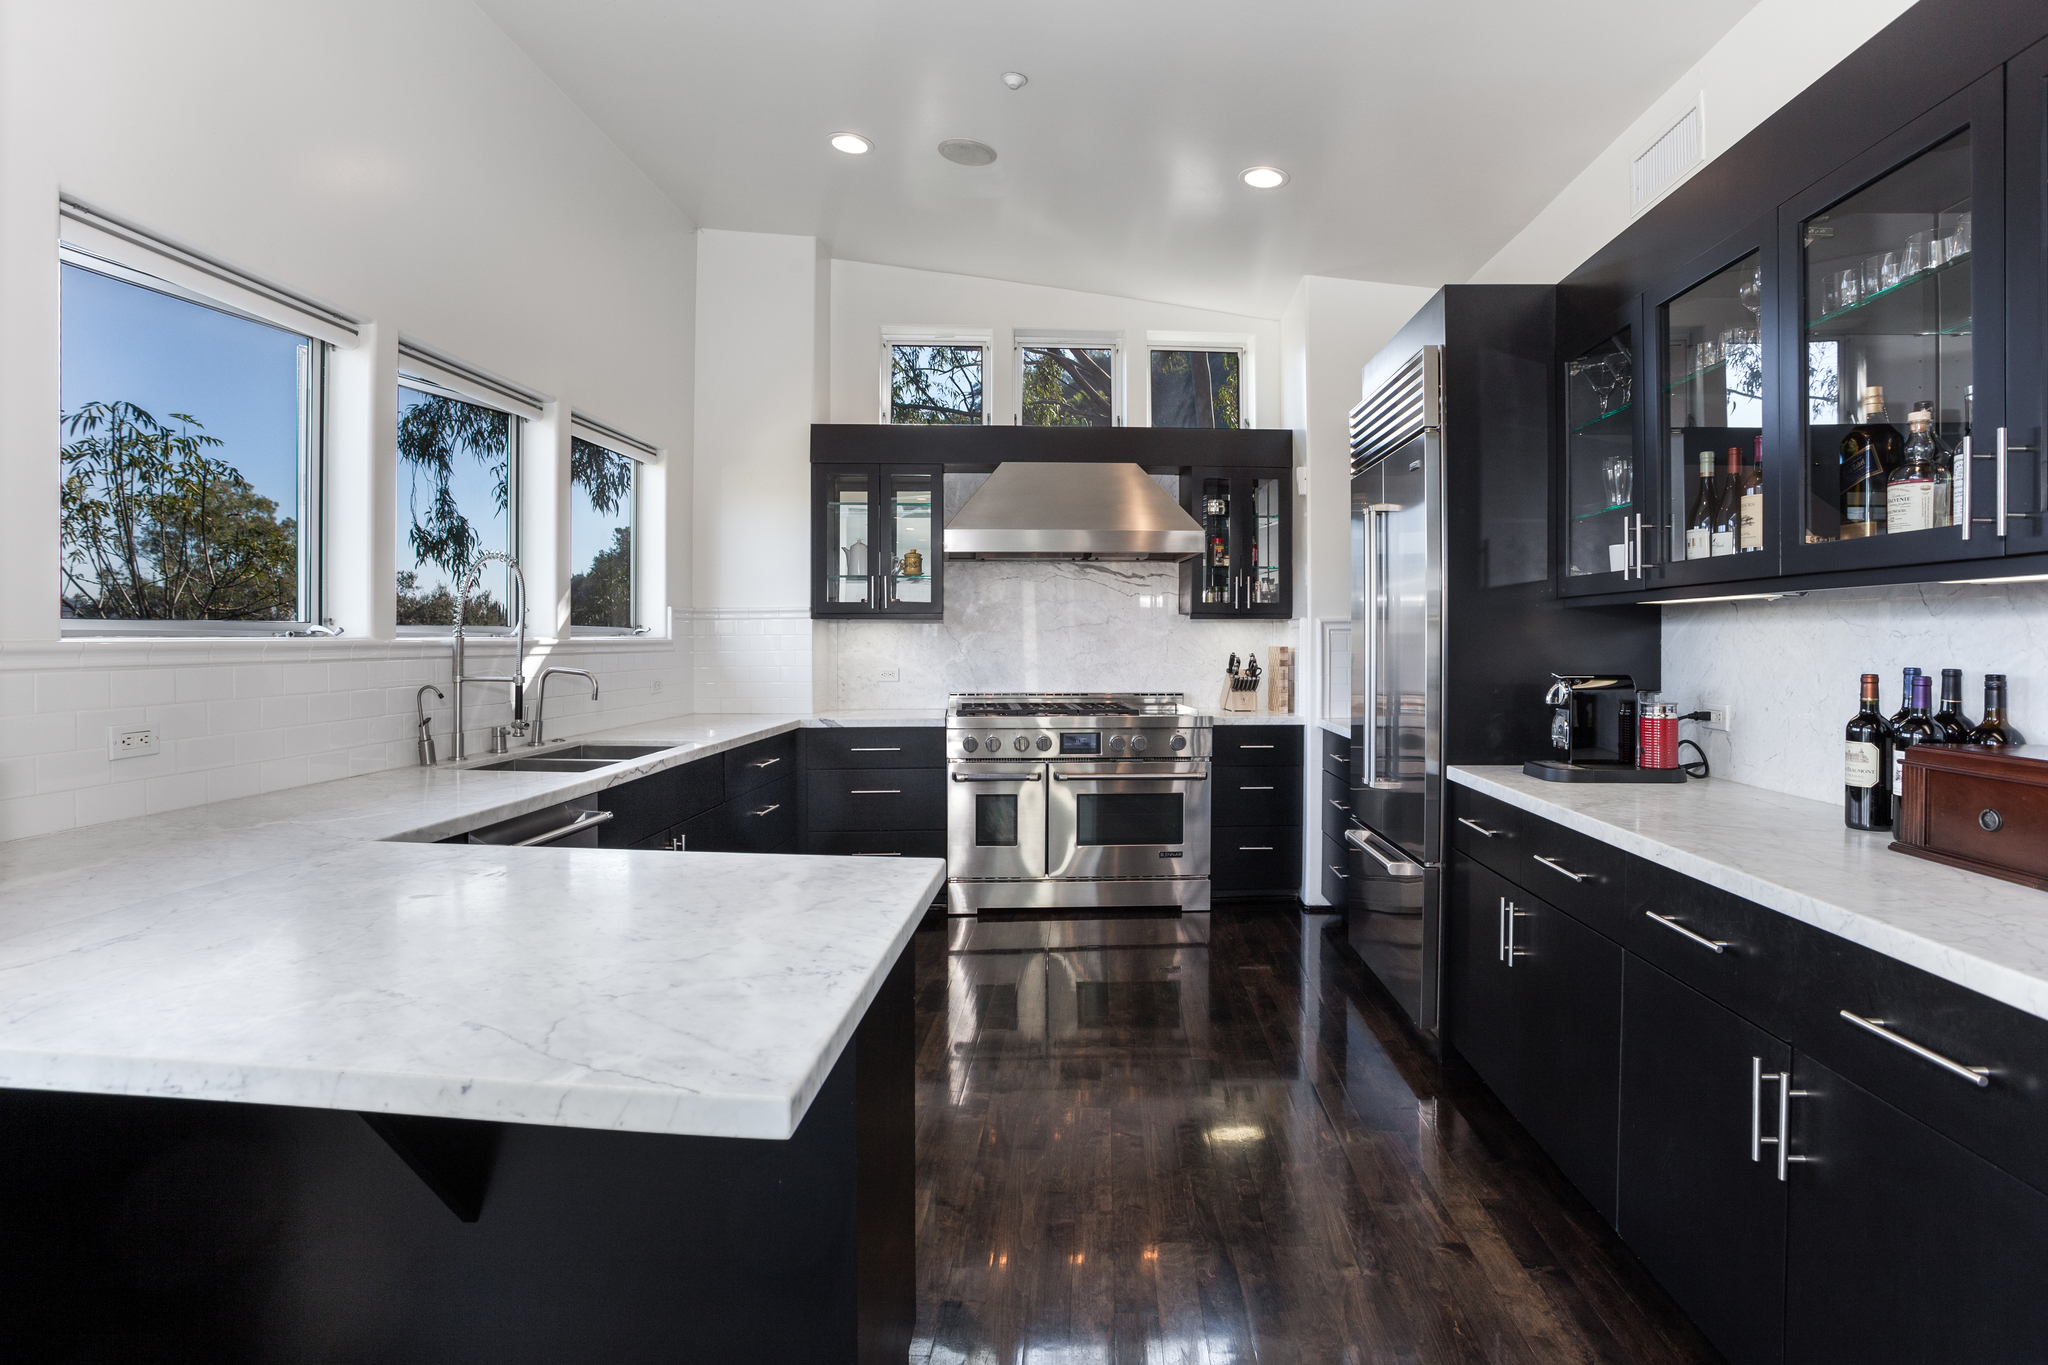 los angeles mls photography